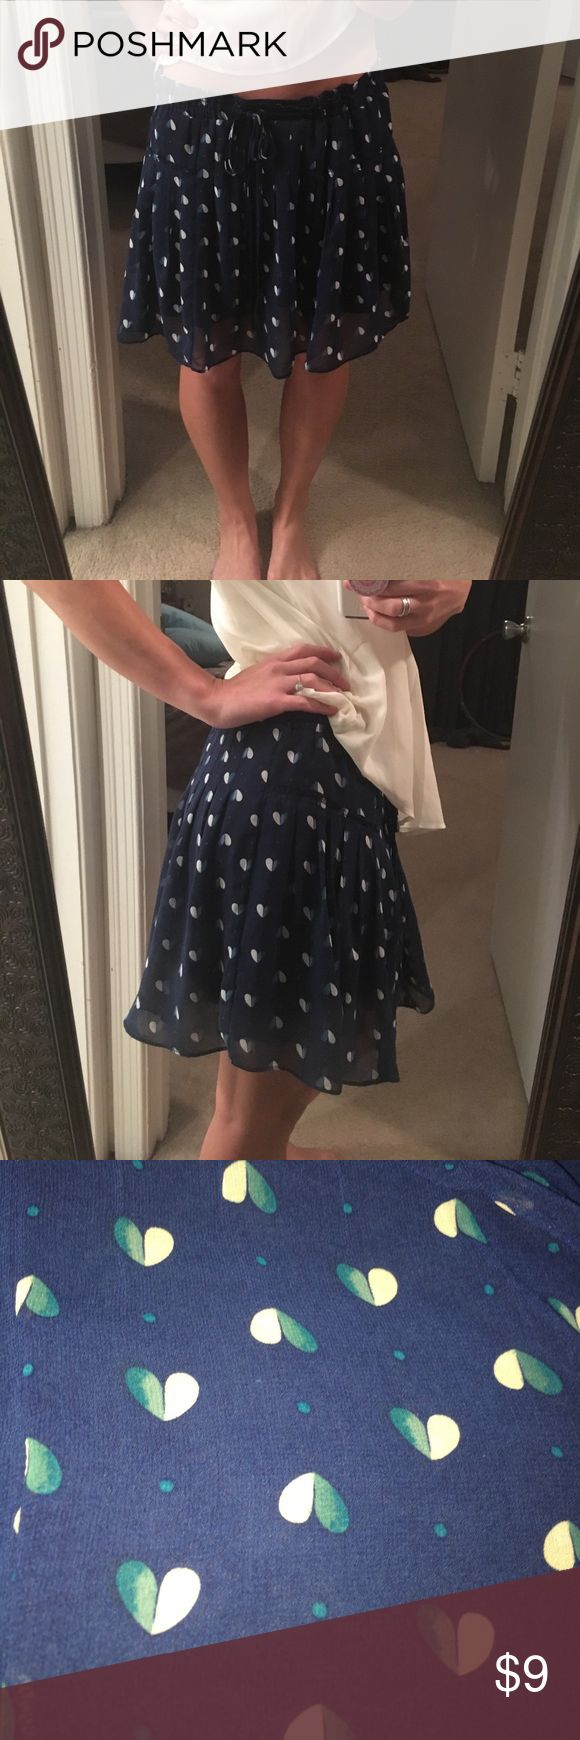 Navy 2 layered sheer American Eagle skirt Worn a few times. No flaws. Size M. Ties at the waist. I am 5'1 and it hits my knees American Eagle Outfitters Skirts Mini